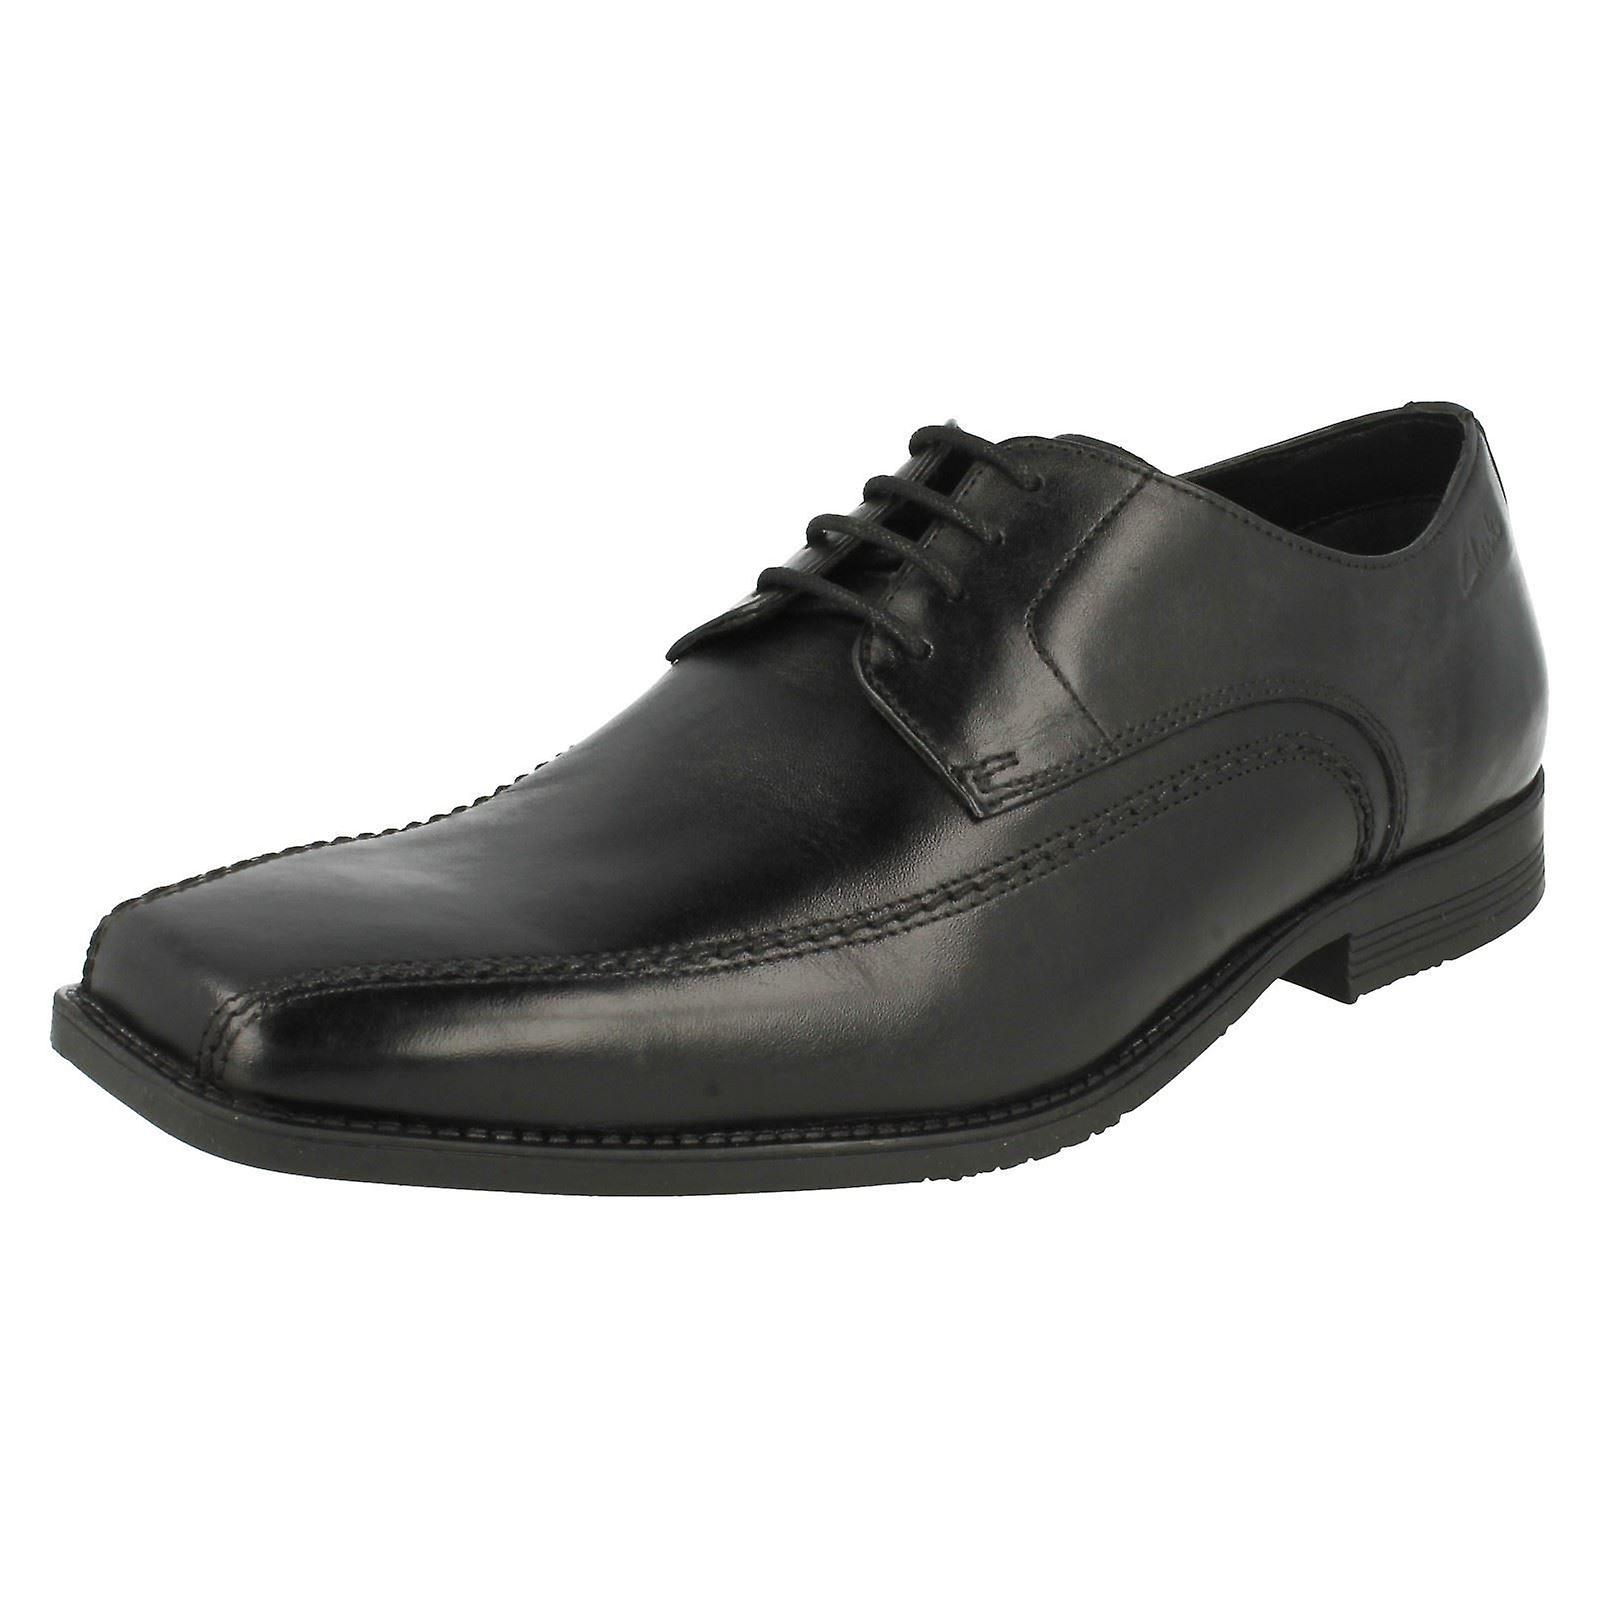 Mens Clarks Formal Lace Up chaussures Baker Lace